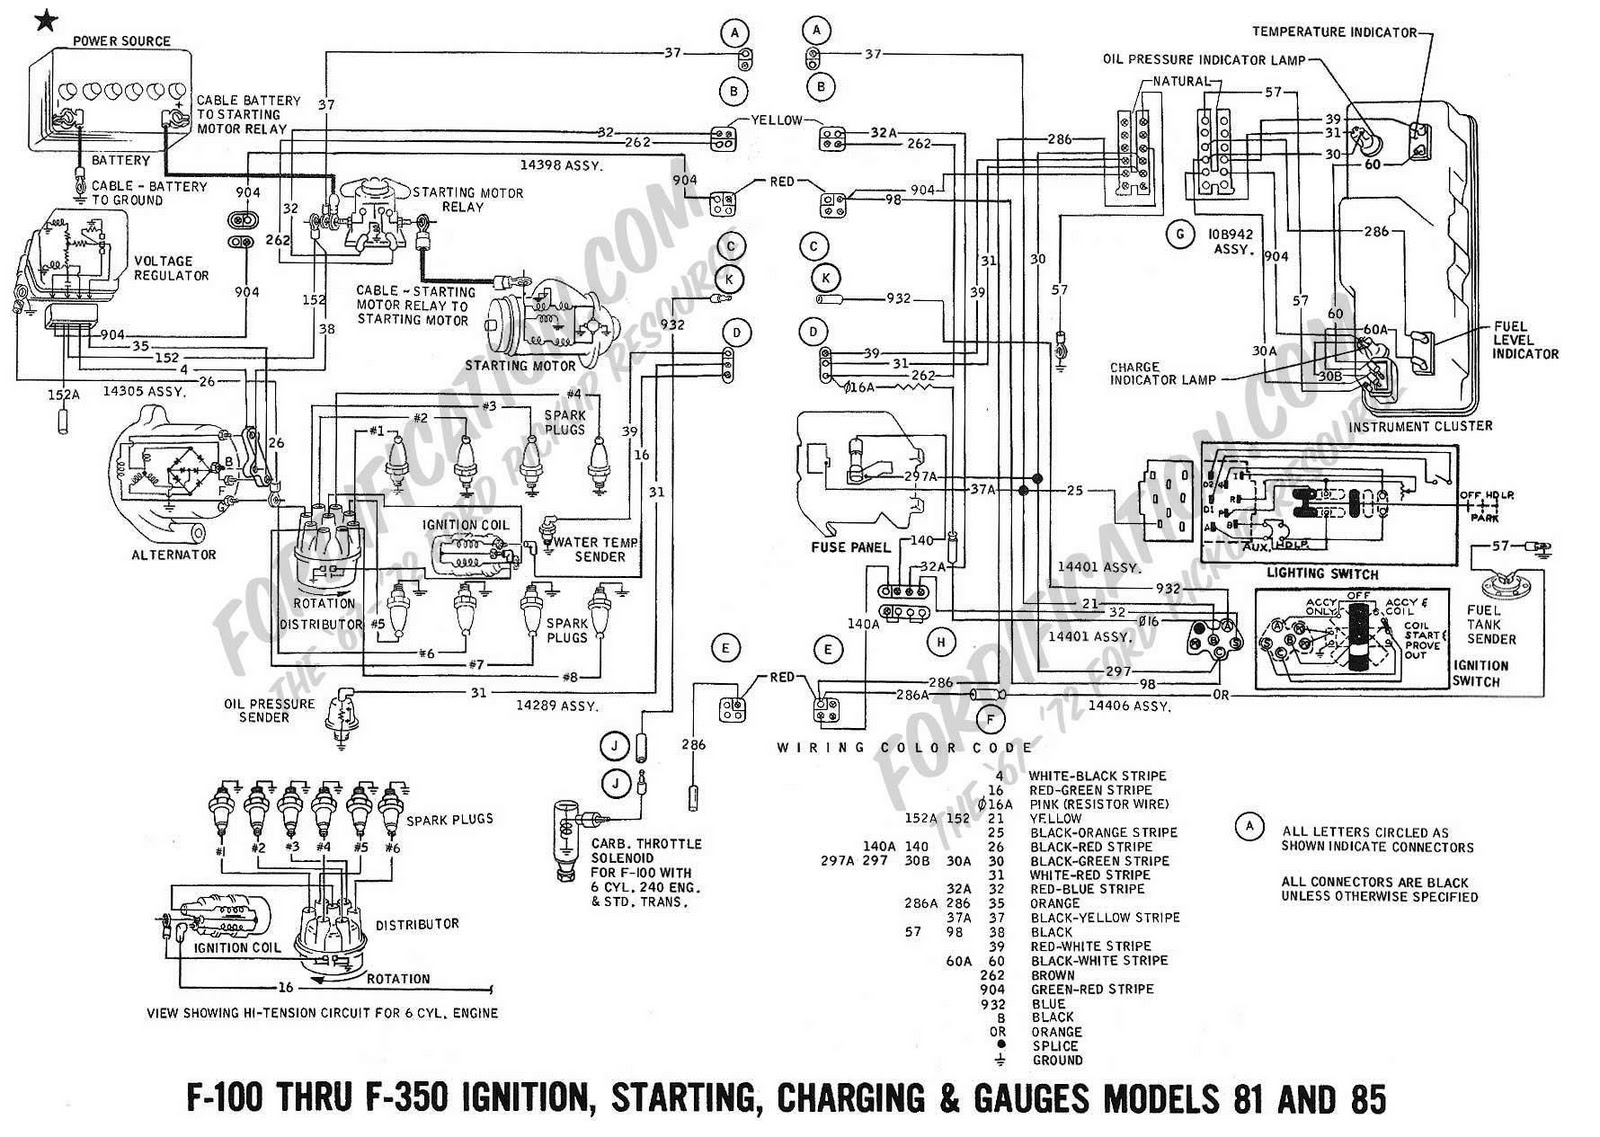 hight resolution of 1977 ford ltd wiring diagram wiring diagram schematics ford pinto engine swap 78 ford pinto wiring